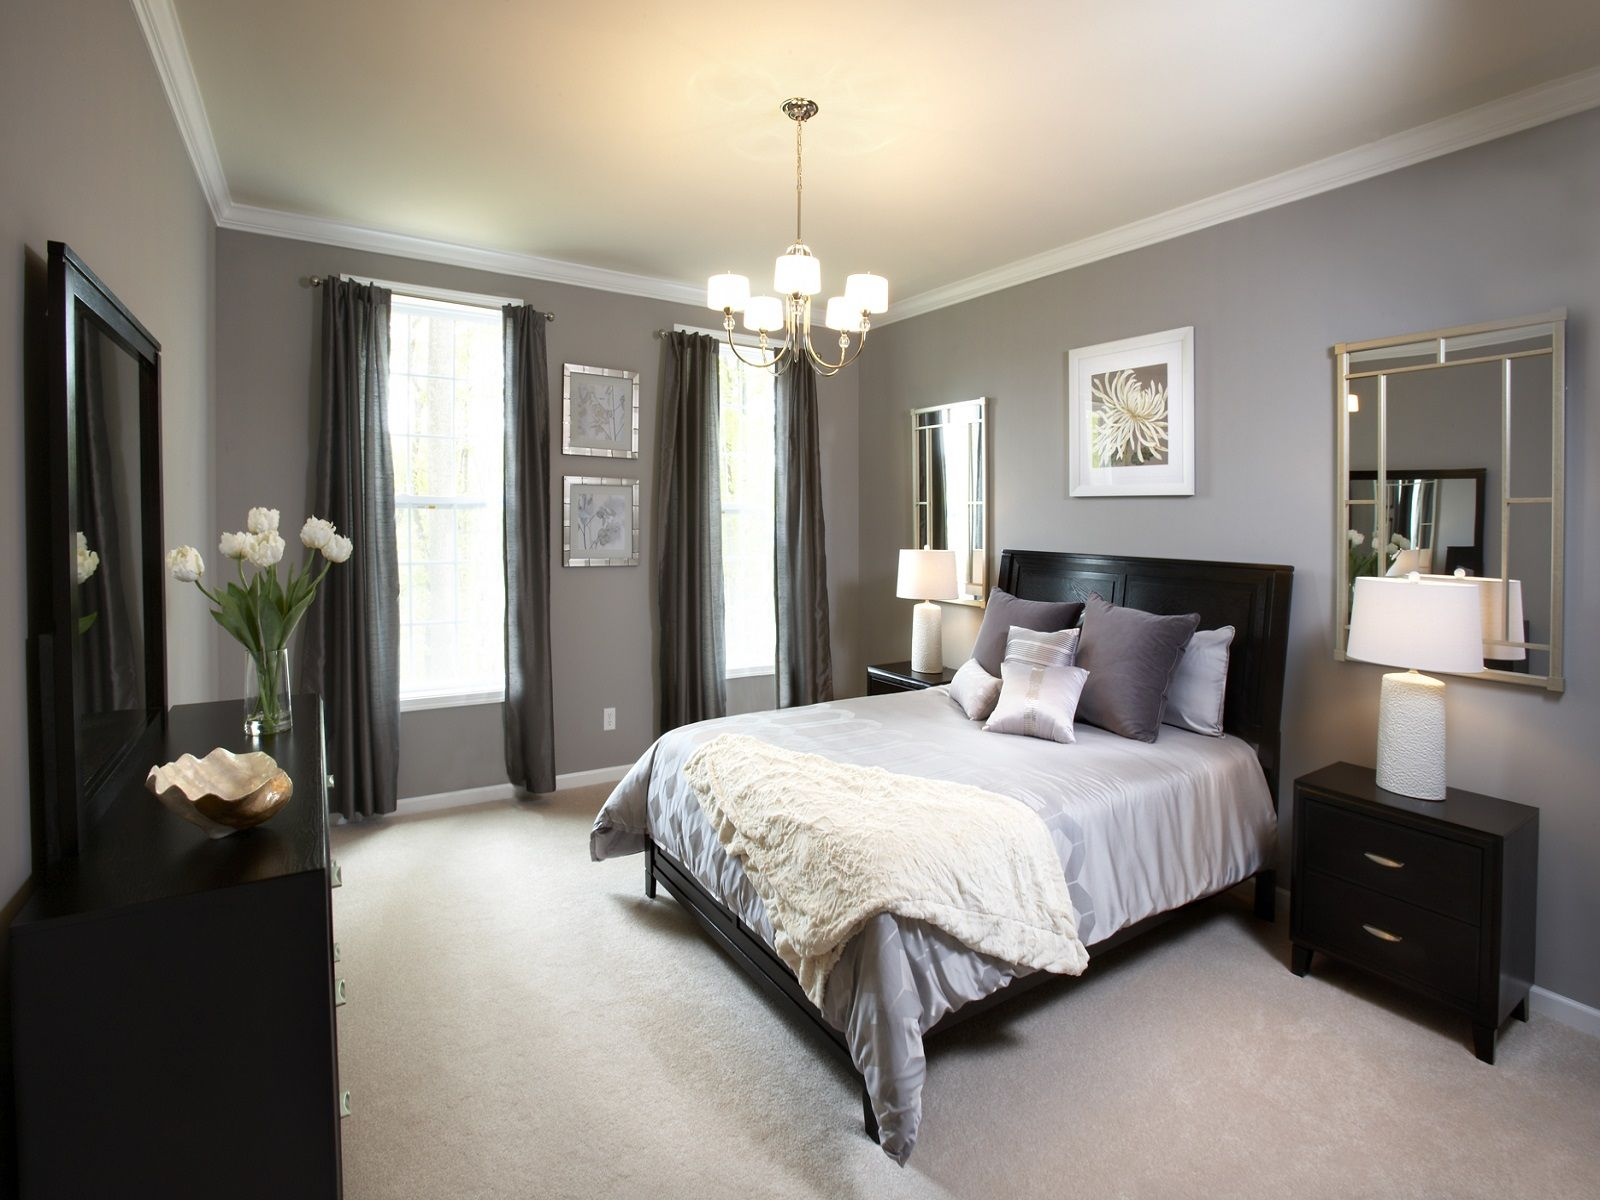 black bedroom ideas inspiration for master bedroom designs grey bedroom decormaster - Grey Bedrooms Decor Ideas